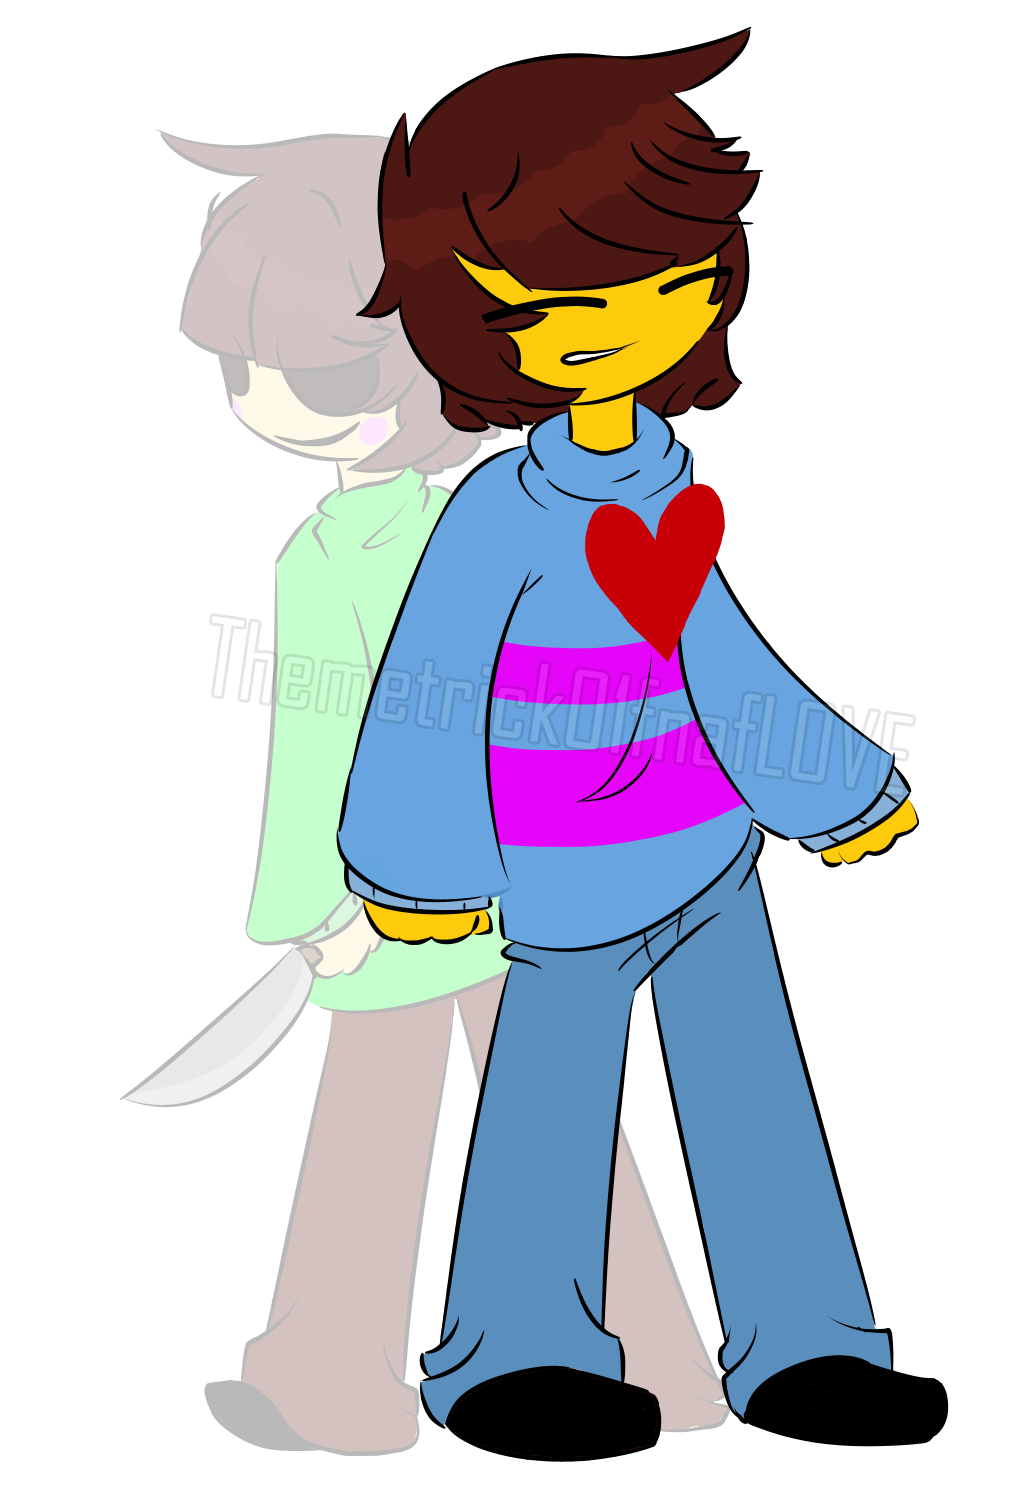 Charra drawing angel. Frisk and chara undertale